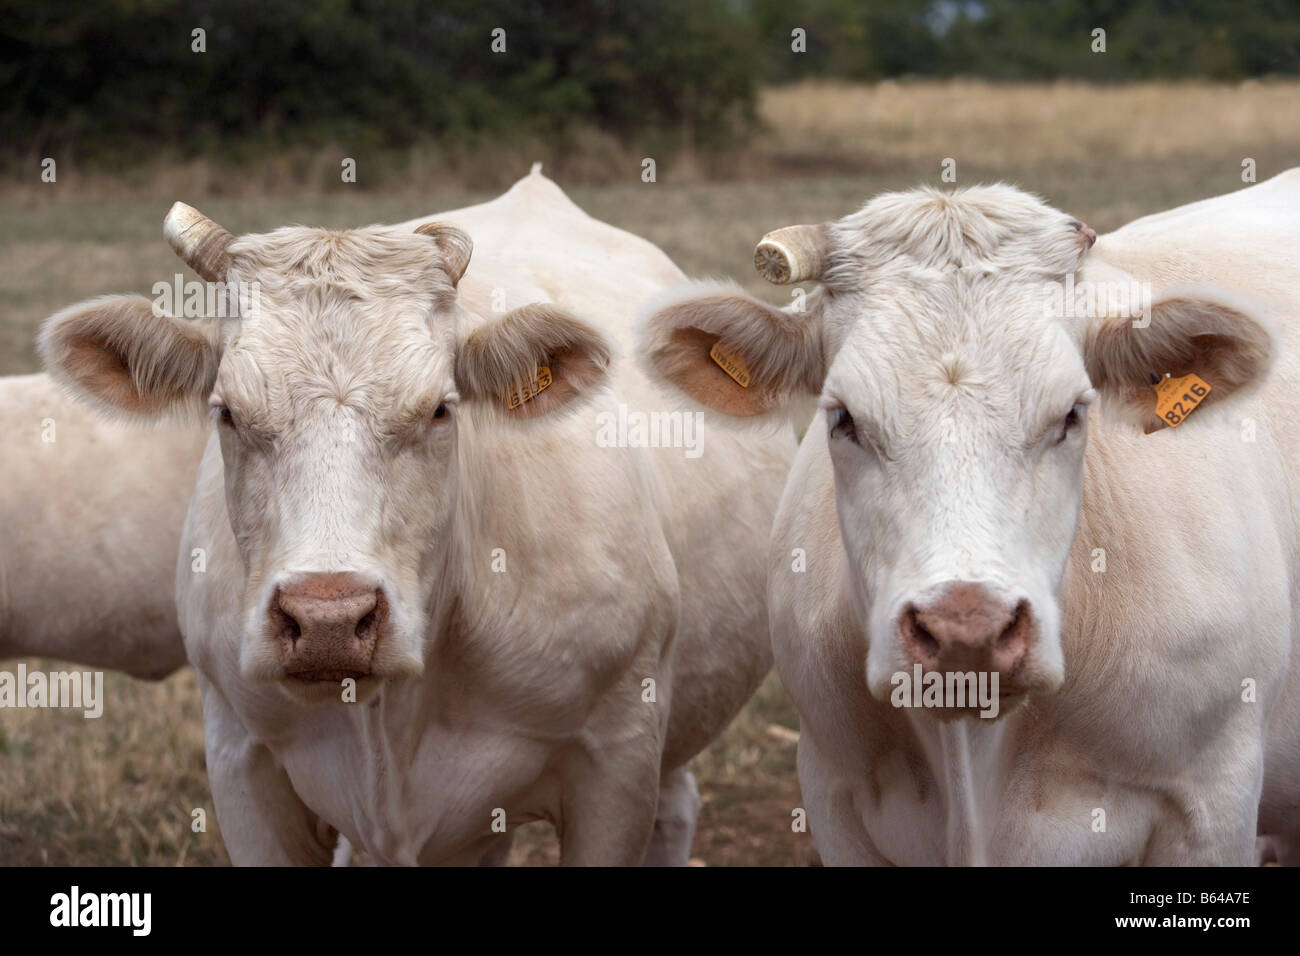 France, near Beaune, Burgundy, Meat cows. - Stock Image